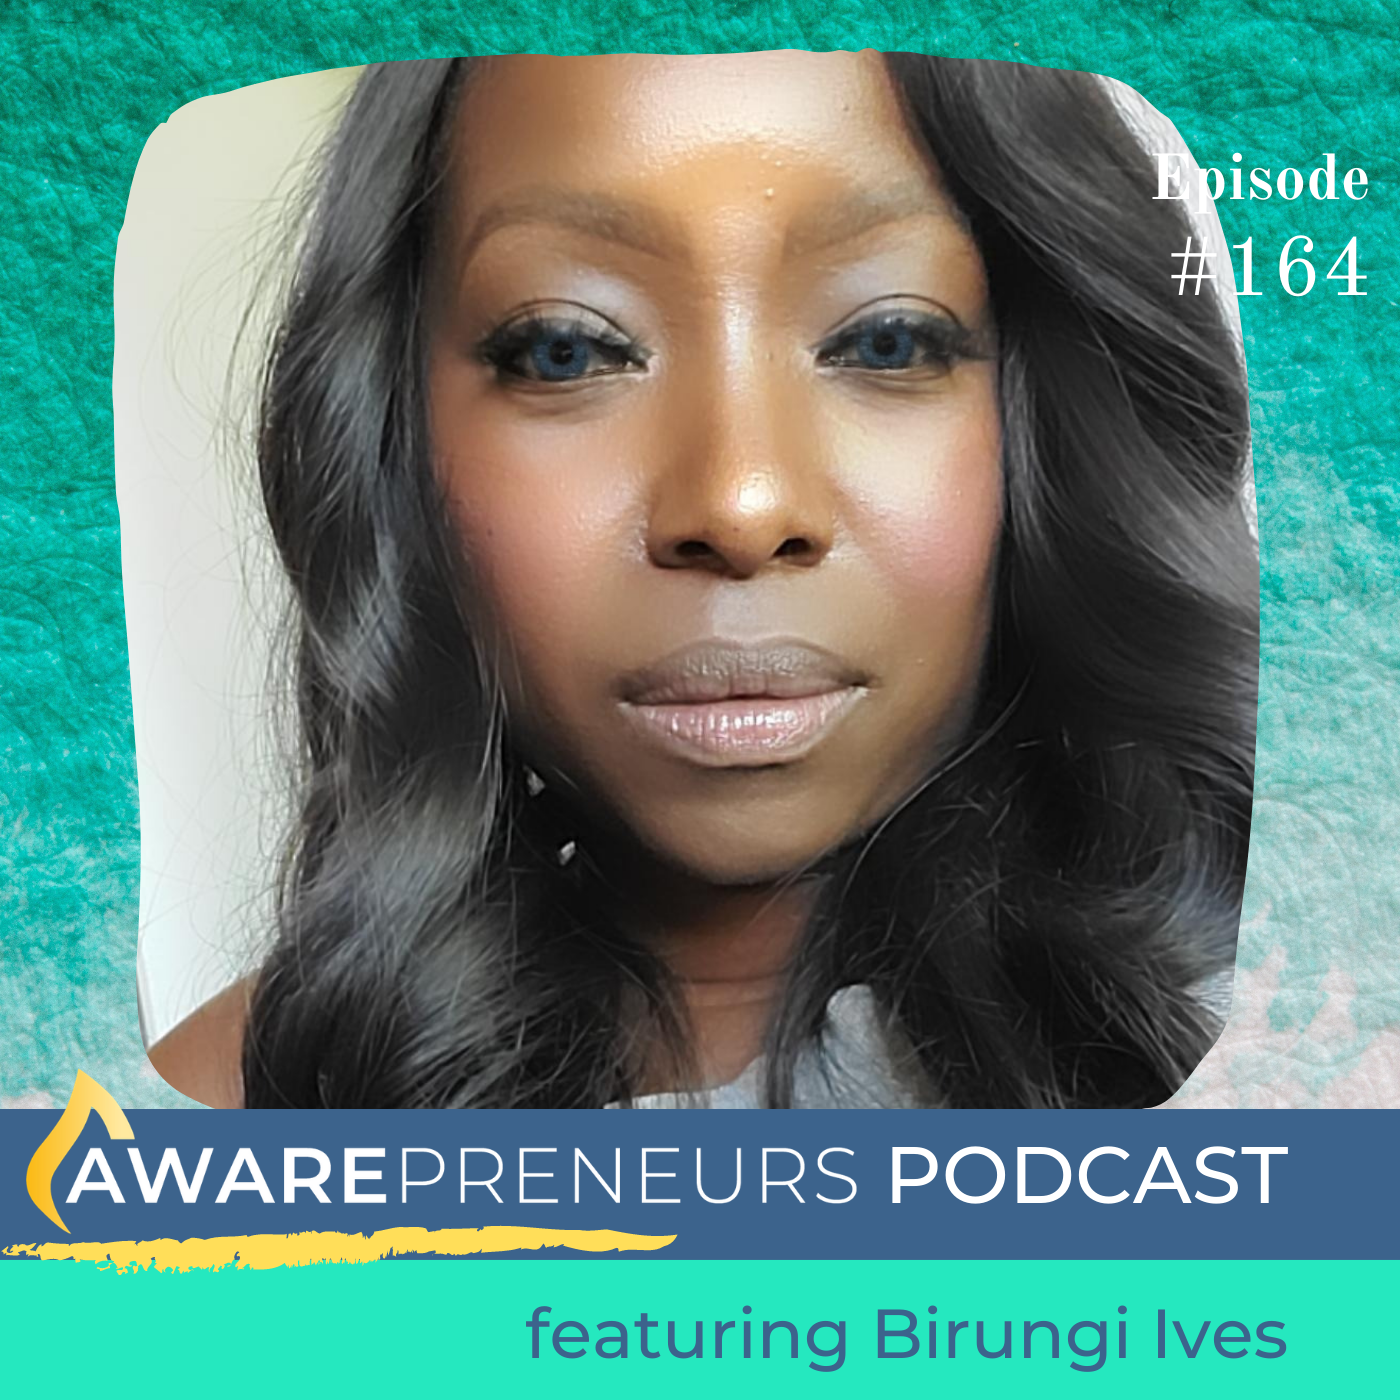 Awarepreneurs Podcaset featuring Birungi Ives